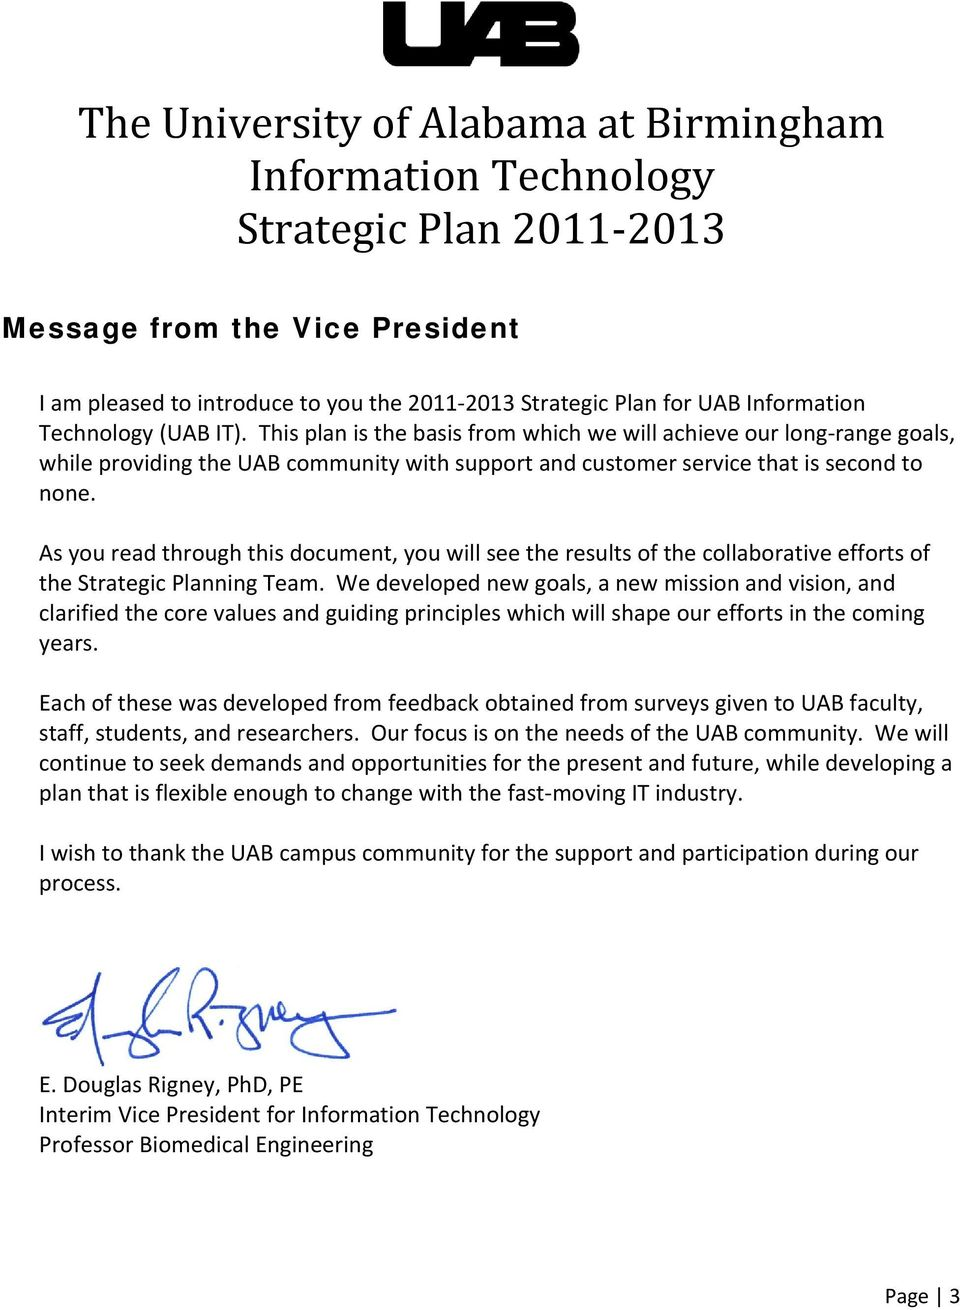 As you read through this document, you will see the results of the collaborative efforts of the Strategic Planning Team.